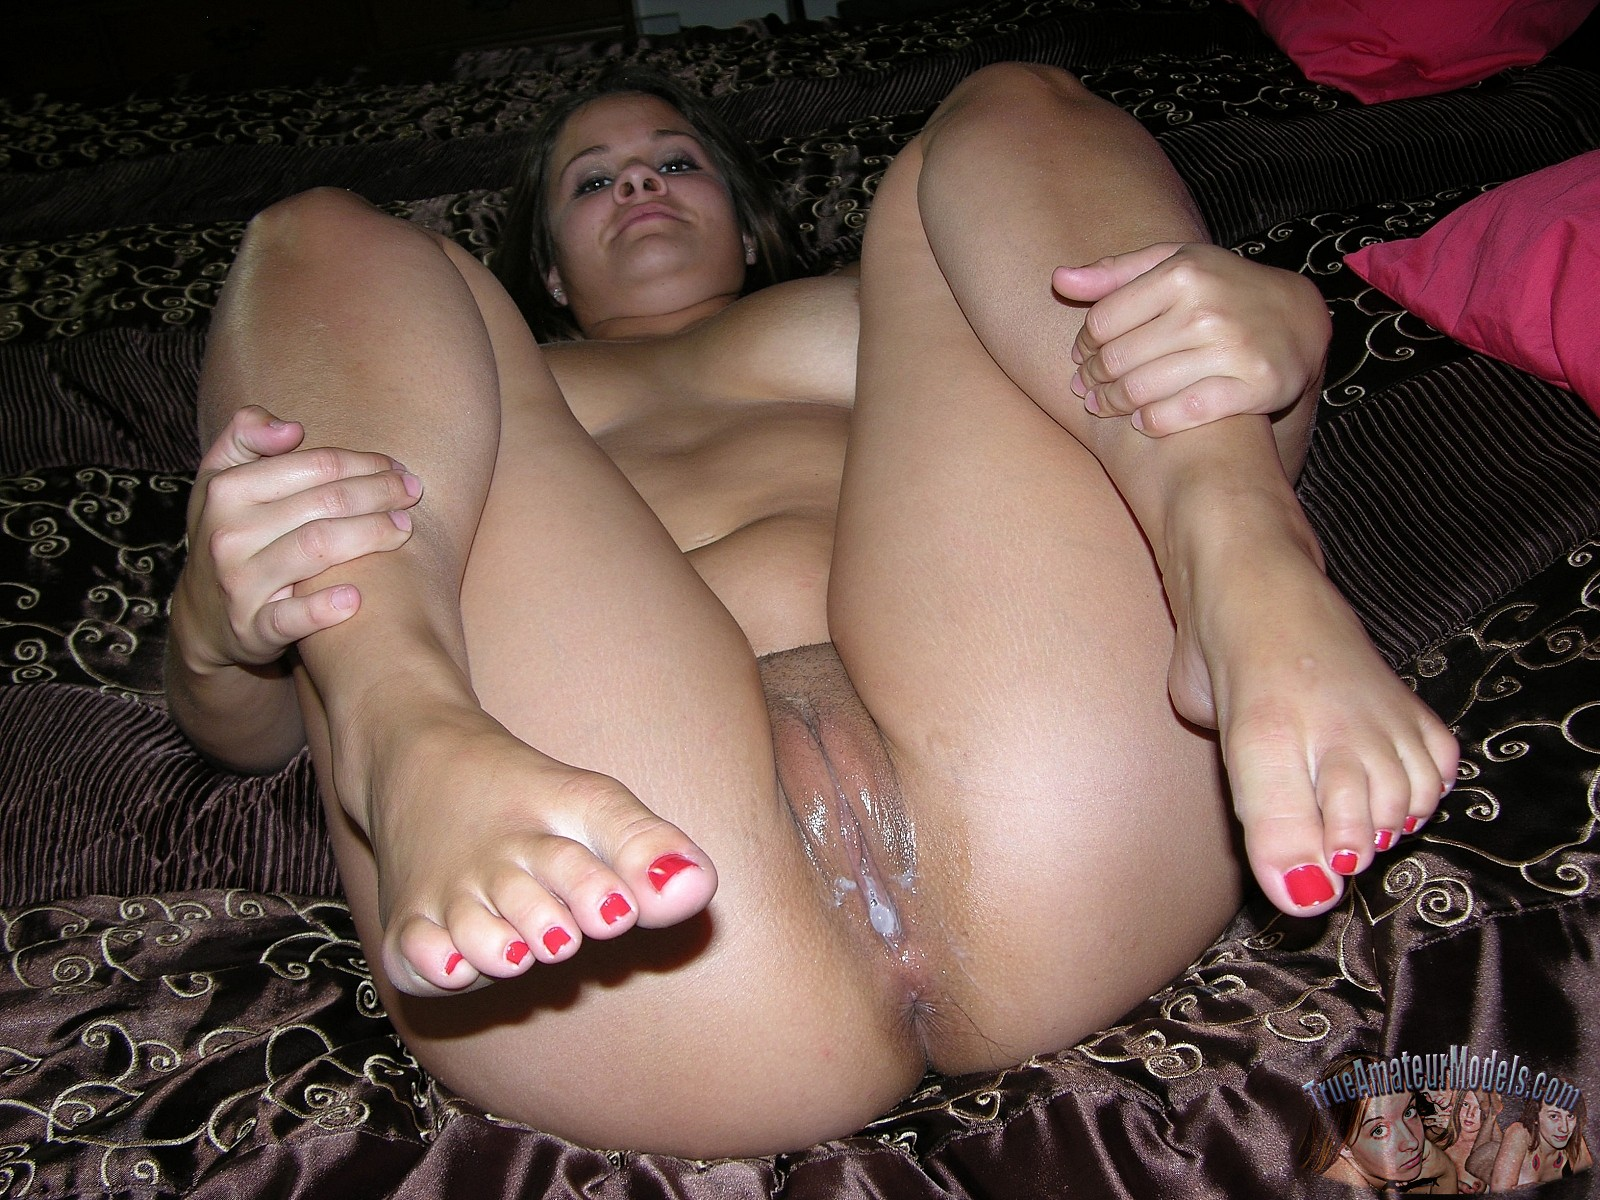 Think, Thick latina pussy creampies agree